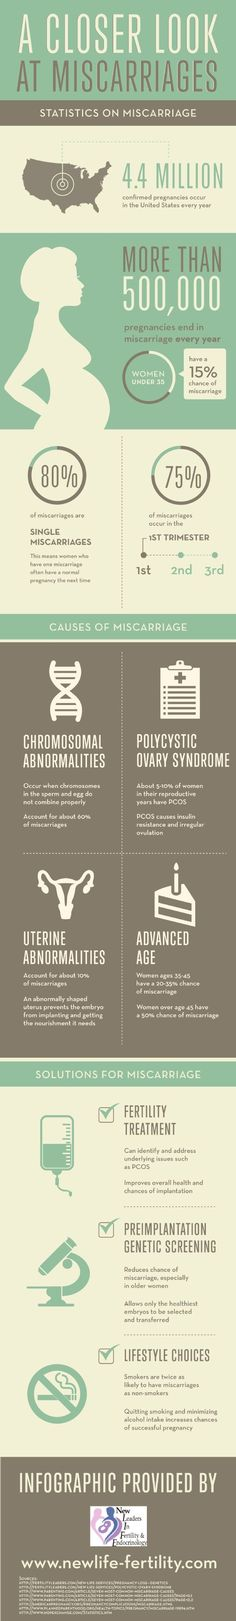 About 5-10% of women in their reproductive years have polycystic ovary syndrome (PCOS), which causes insulin resistance and irregular ovulation.  #TheGroveofEvanston